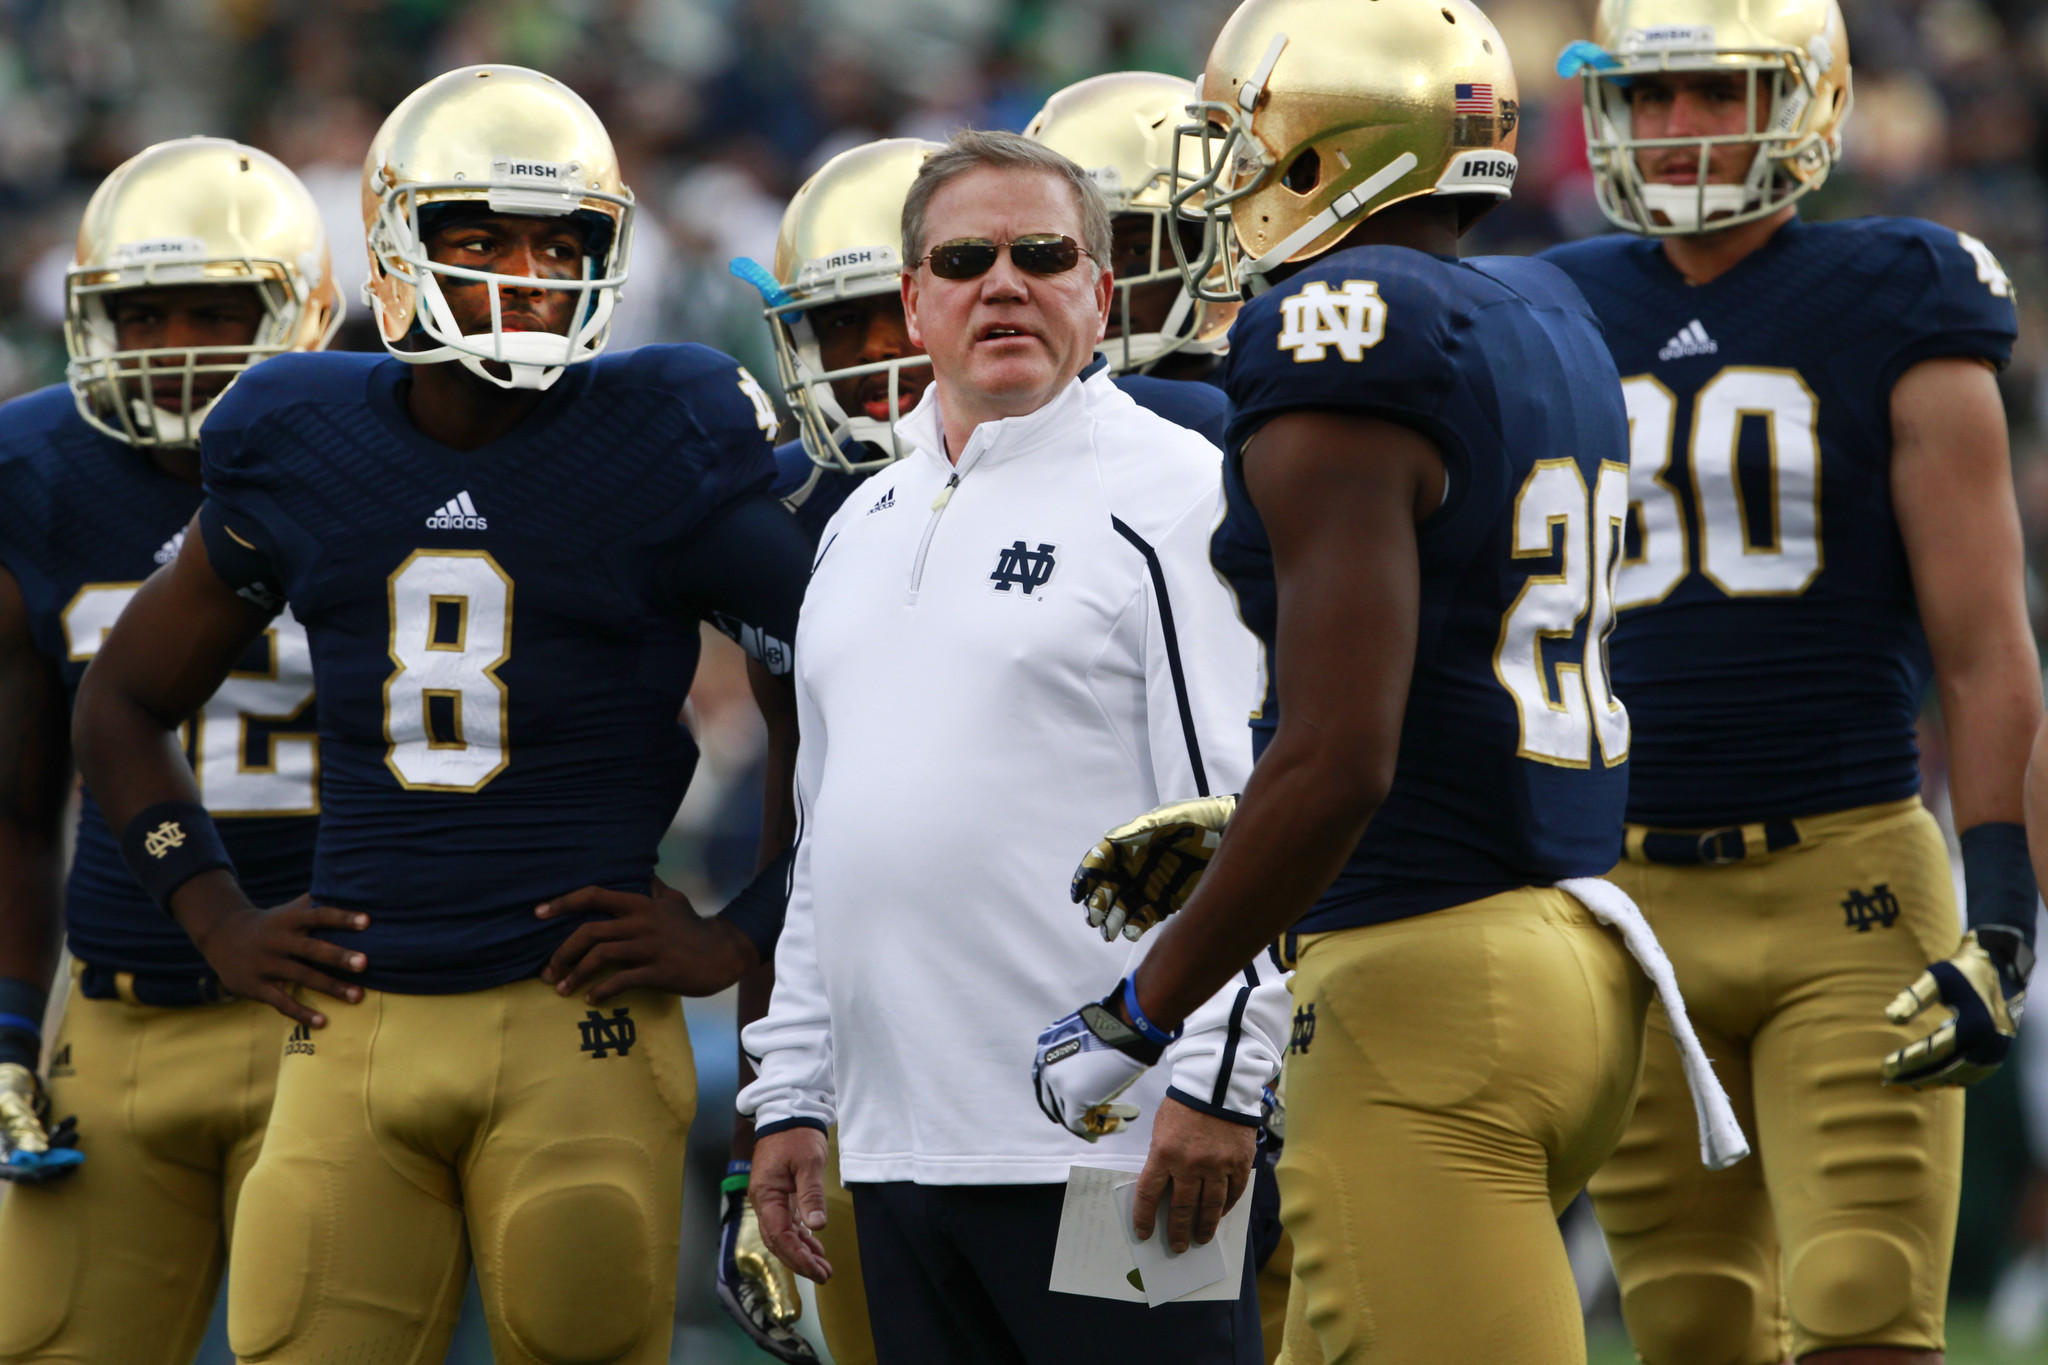 Notre Dame Fighting Irish coach Brian Kelly, with his players, before the start of their game against the Michigan State Spartans, at Notre Dame Stadium, in South Bend, Ind., on Saturday Sept. 21, 2013.